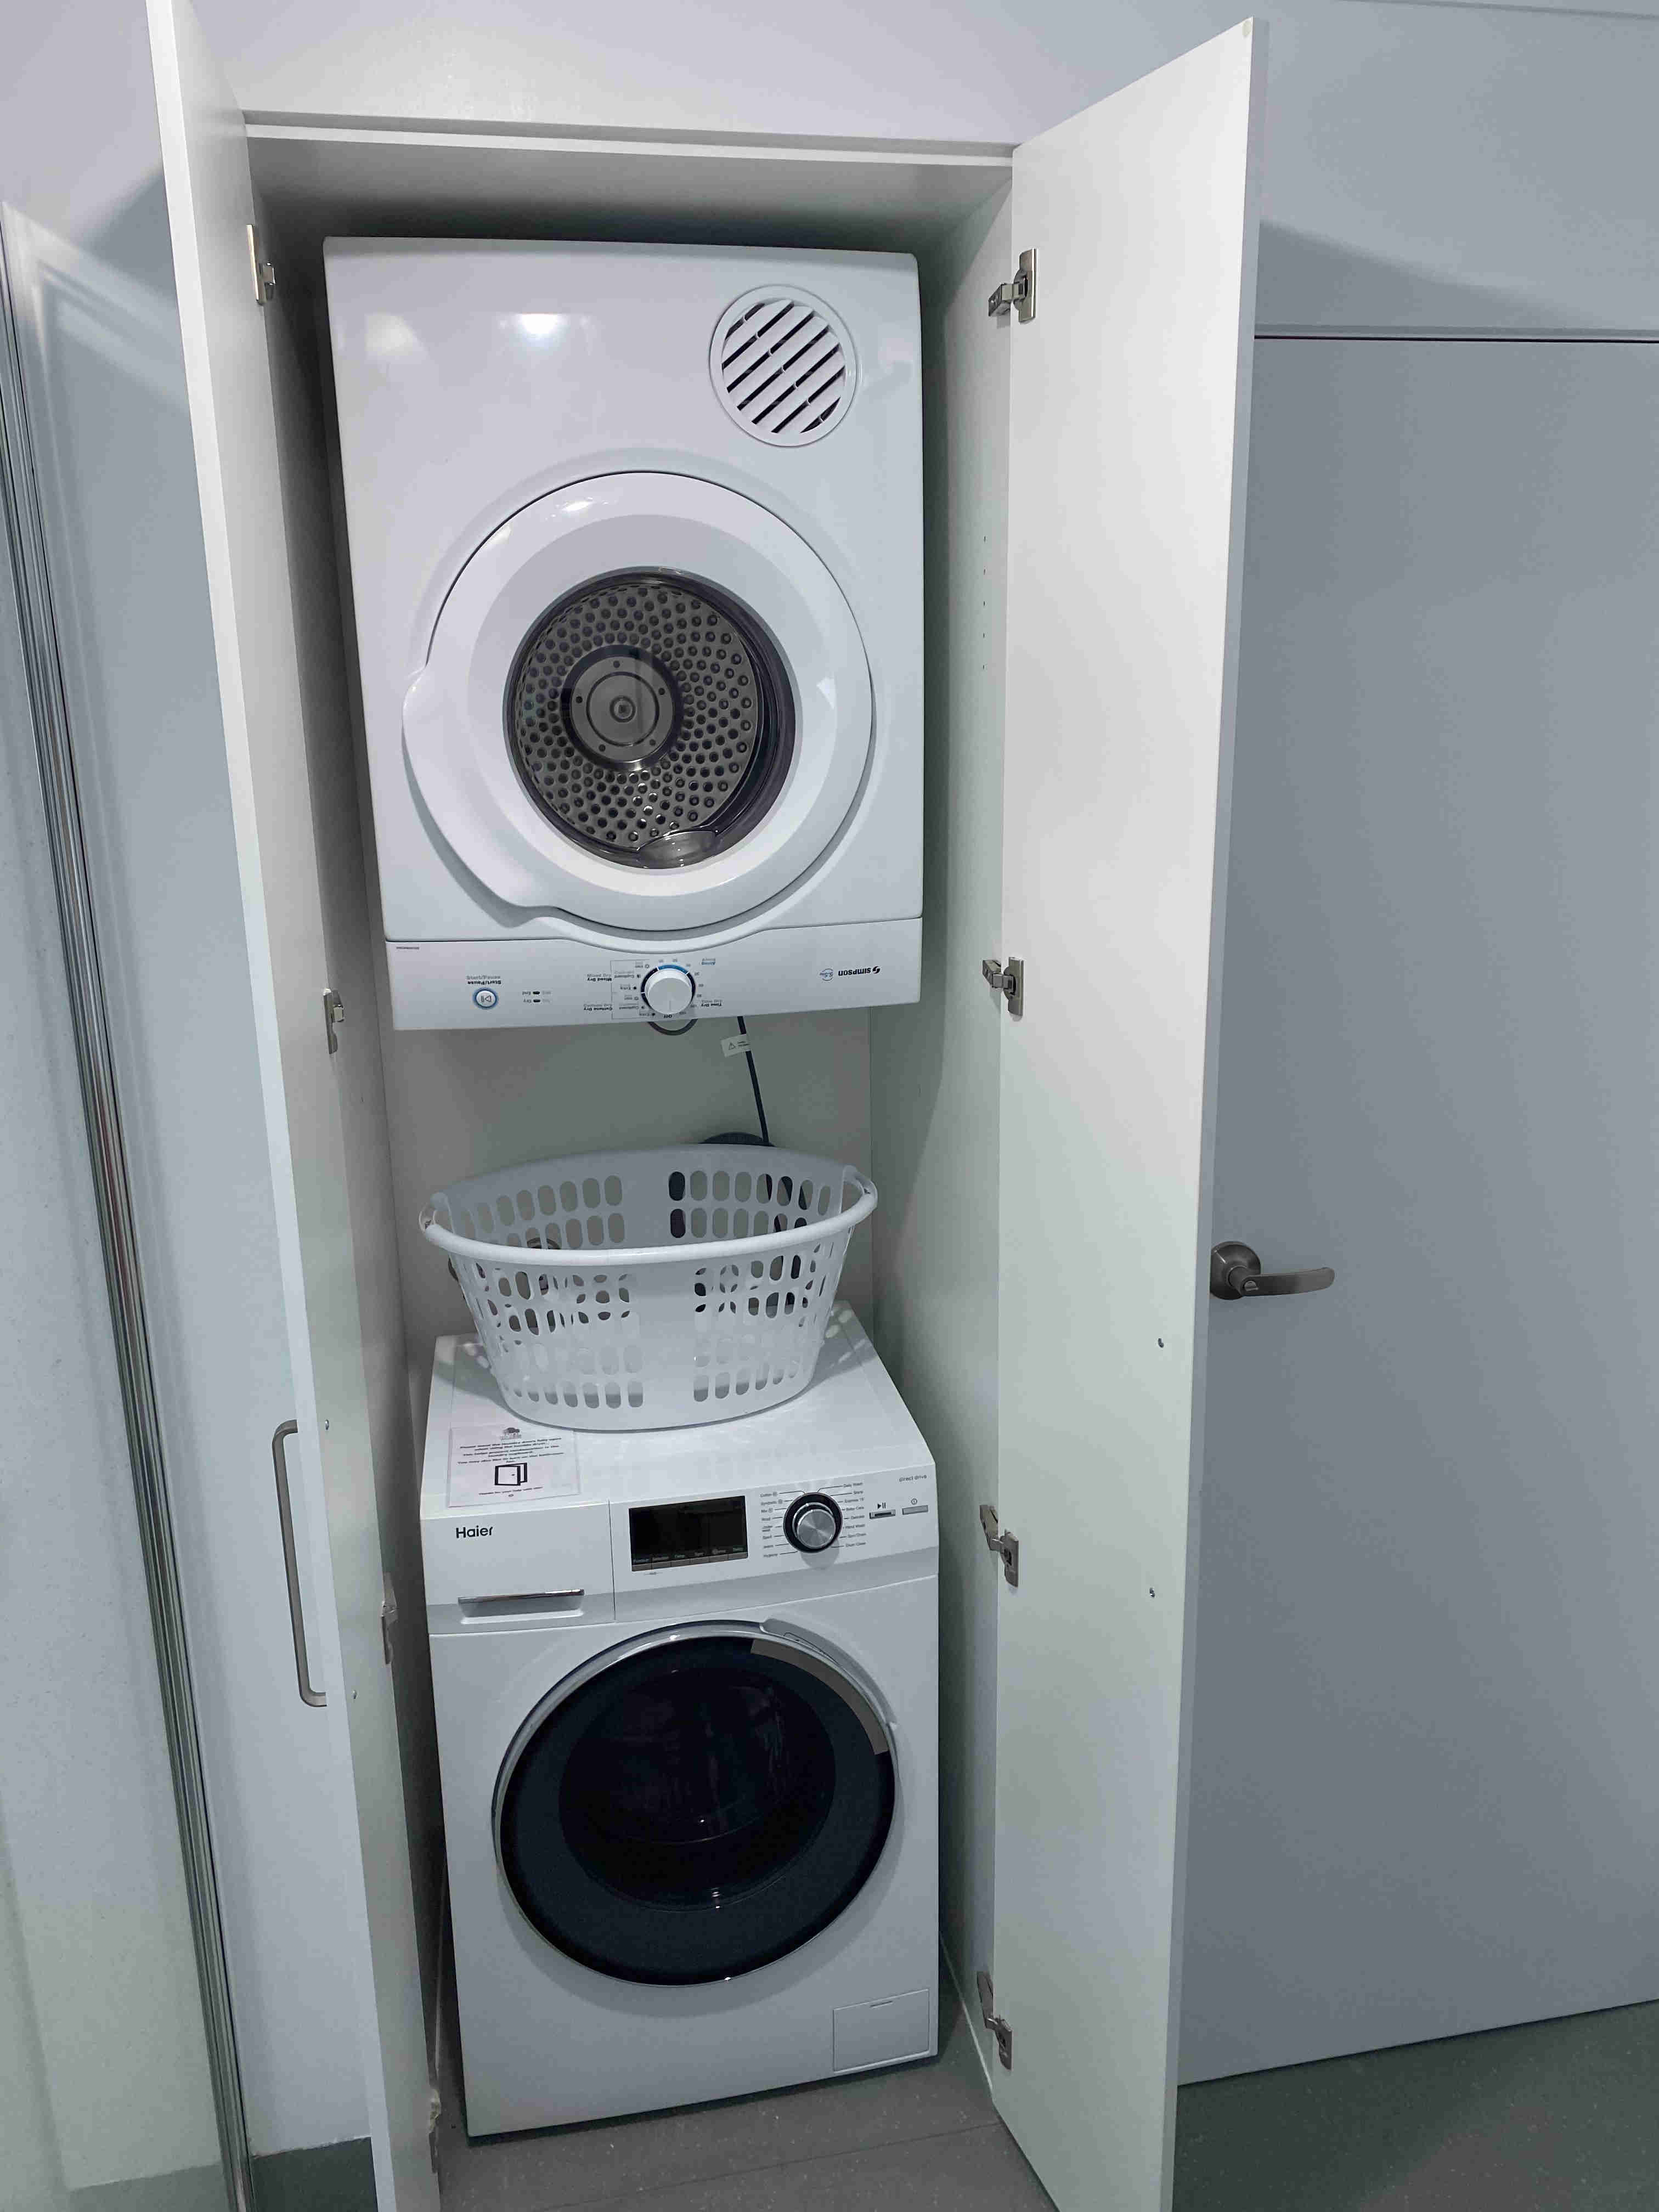 Washing machine, dryer and washing basket in laundry of one bedroom apartments